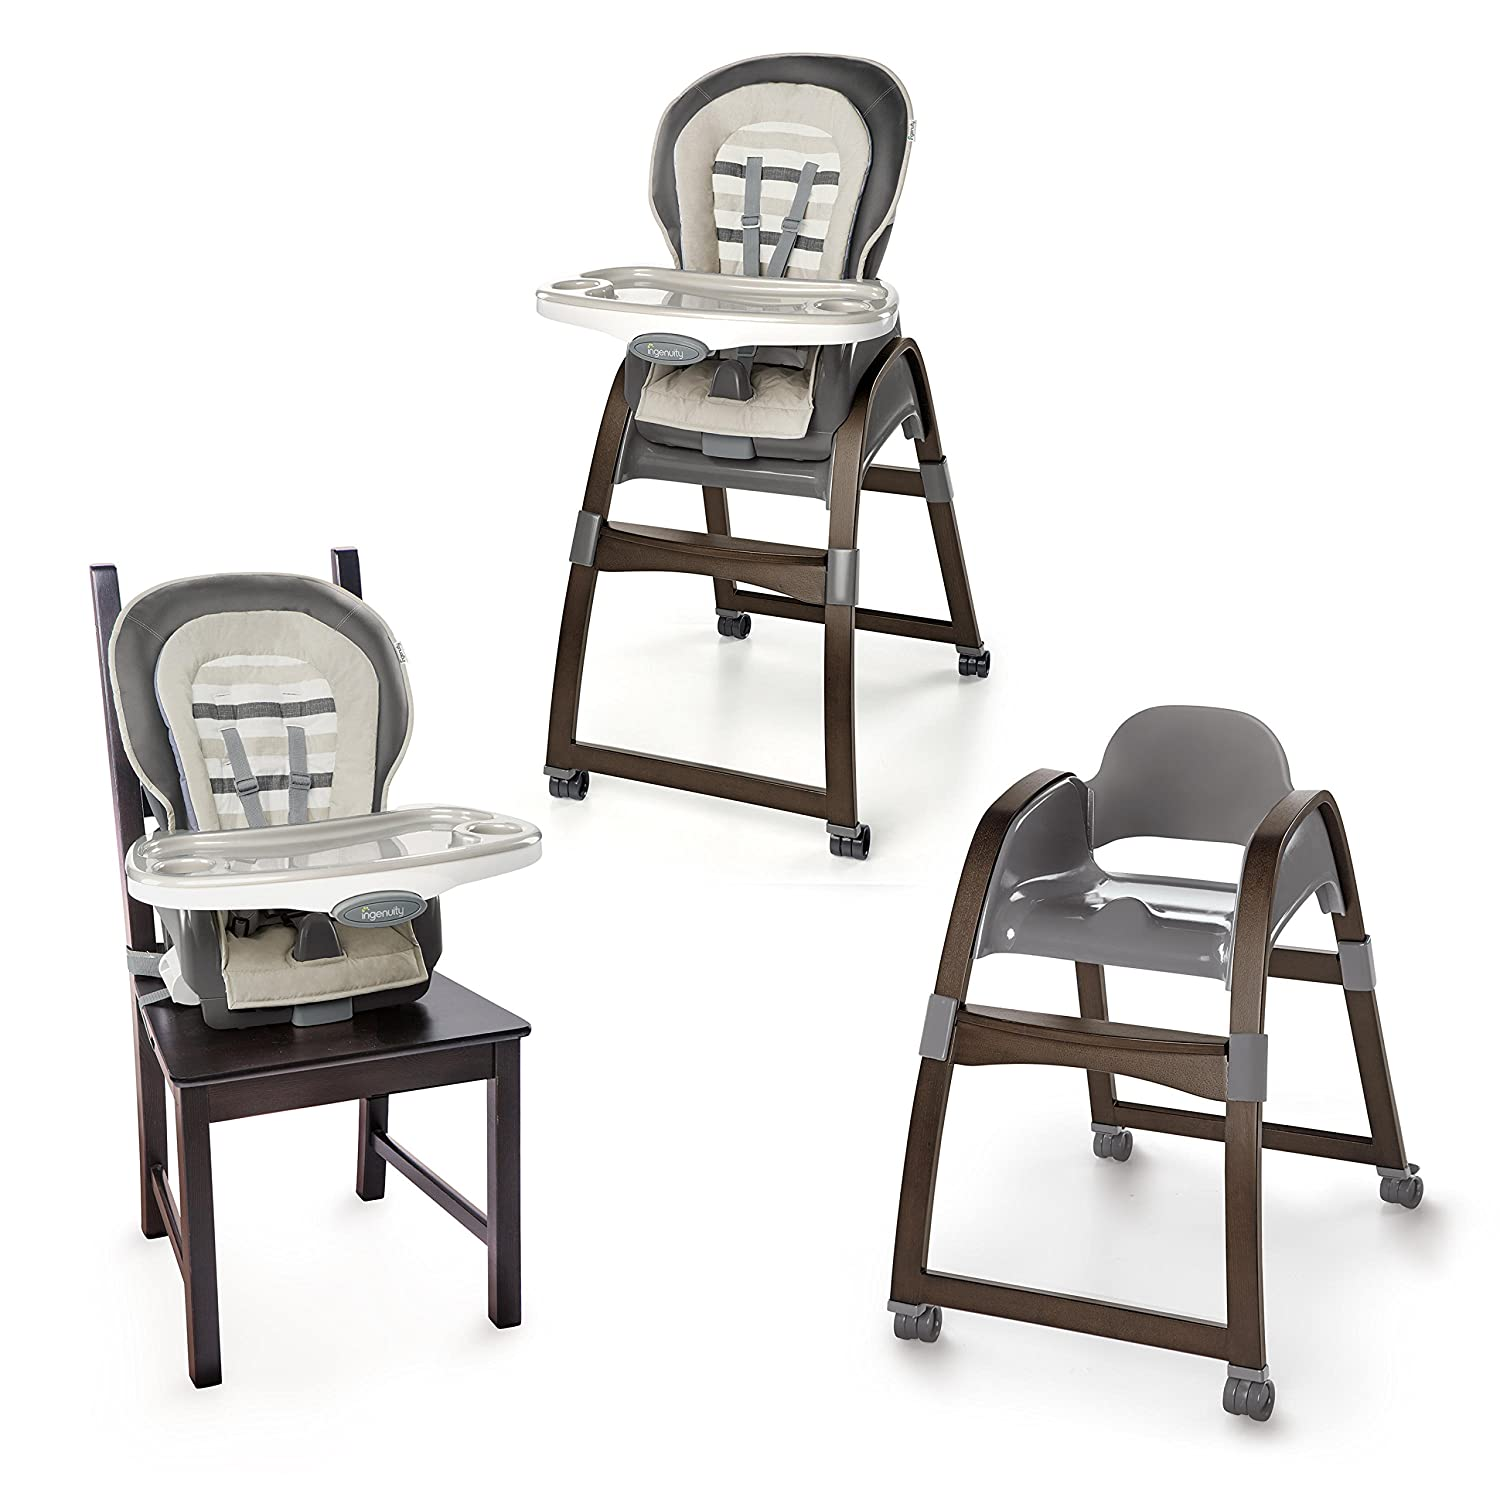 Ingenuity Trio Wood 3-in-1 High Chair Kids II - (Carson CA) 10931-1-NA-YW2